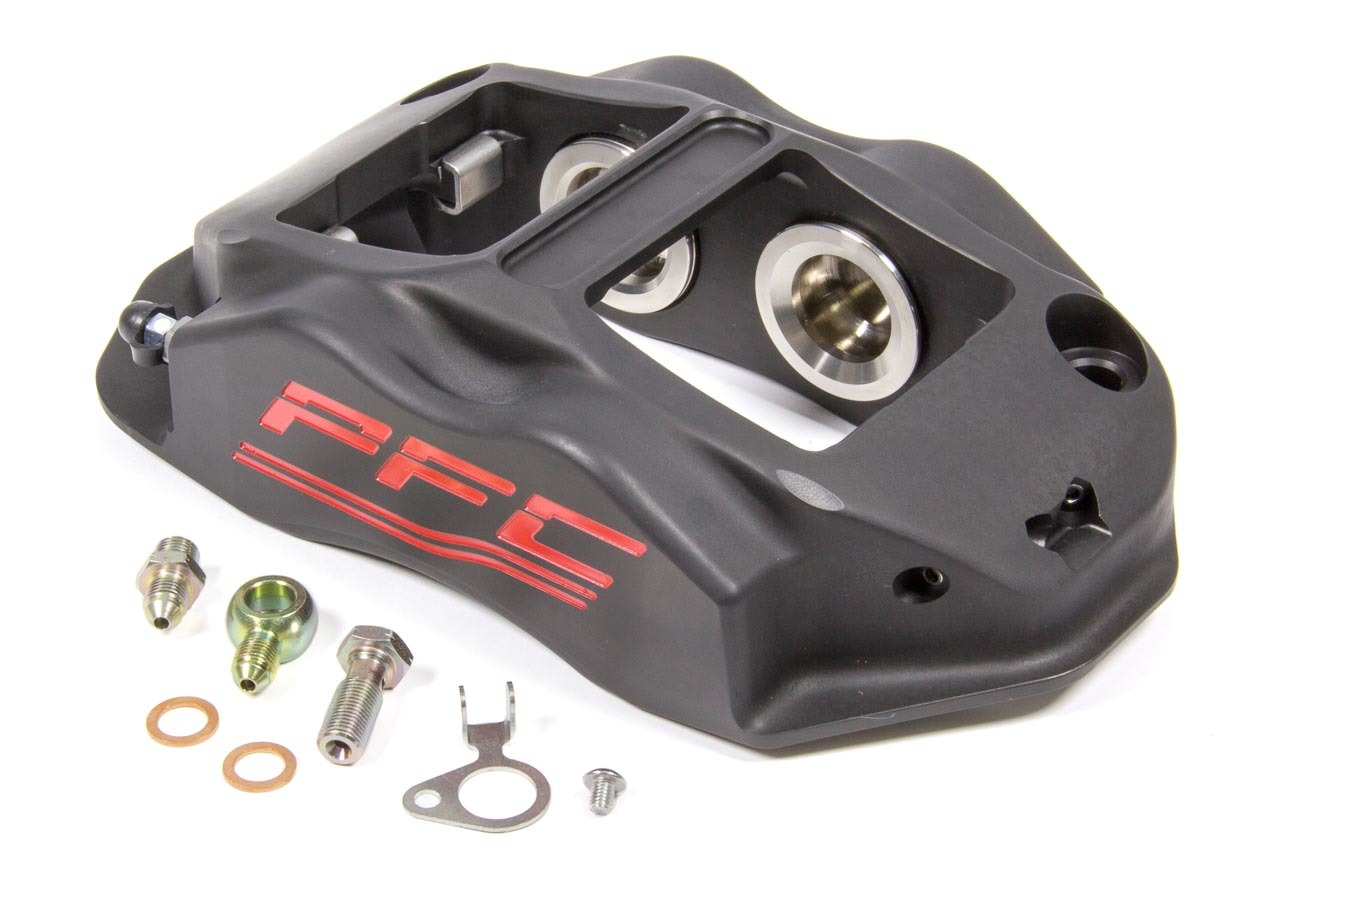 Performance Friction 94-323-410-440-11A Brake Caliper, ZR94, Driver Side, Trailing, 4 Piston, Aluminum, Black Anodized, 12.716 in OD x 1.250 in Thick Rotor, 7.00 in Radial Mount, Each